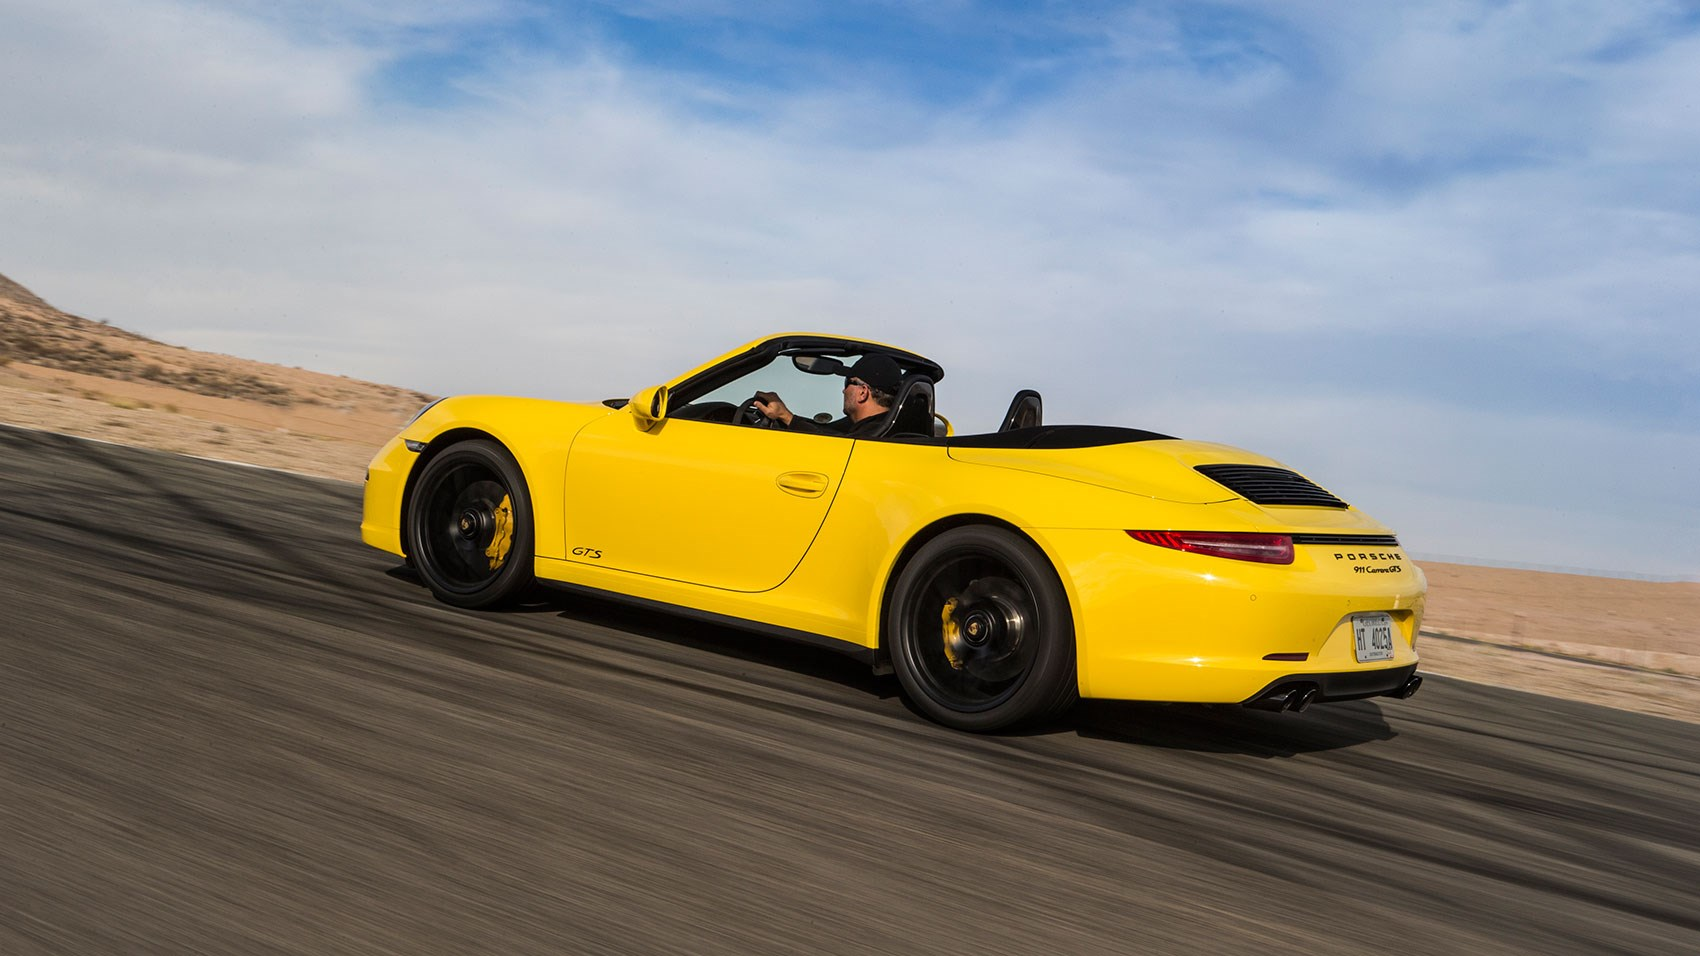 Porsche 911 Carrera GTS Cabriolet (2015) review | CAR Magazine on porsche 930 cabriolet, 2002 porsche cabriolet, porsche 4s, porsche gts, porsche 356a cabriolet, carrera 4s cabriolet, porsche boxster cabriolet, porsche targa, porsche 997 cabriolet, 2009 audi a4 cabriolet, porsche gt, porsche 356b cabriolet, porsche 356c cabriolet, porsche 996 cabriolet, porsche rs, porsche turbo, porsche gt3, porsche 964 cabriolet, porsche panamera, porsche 991 cabriolet,